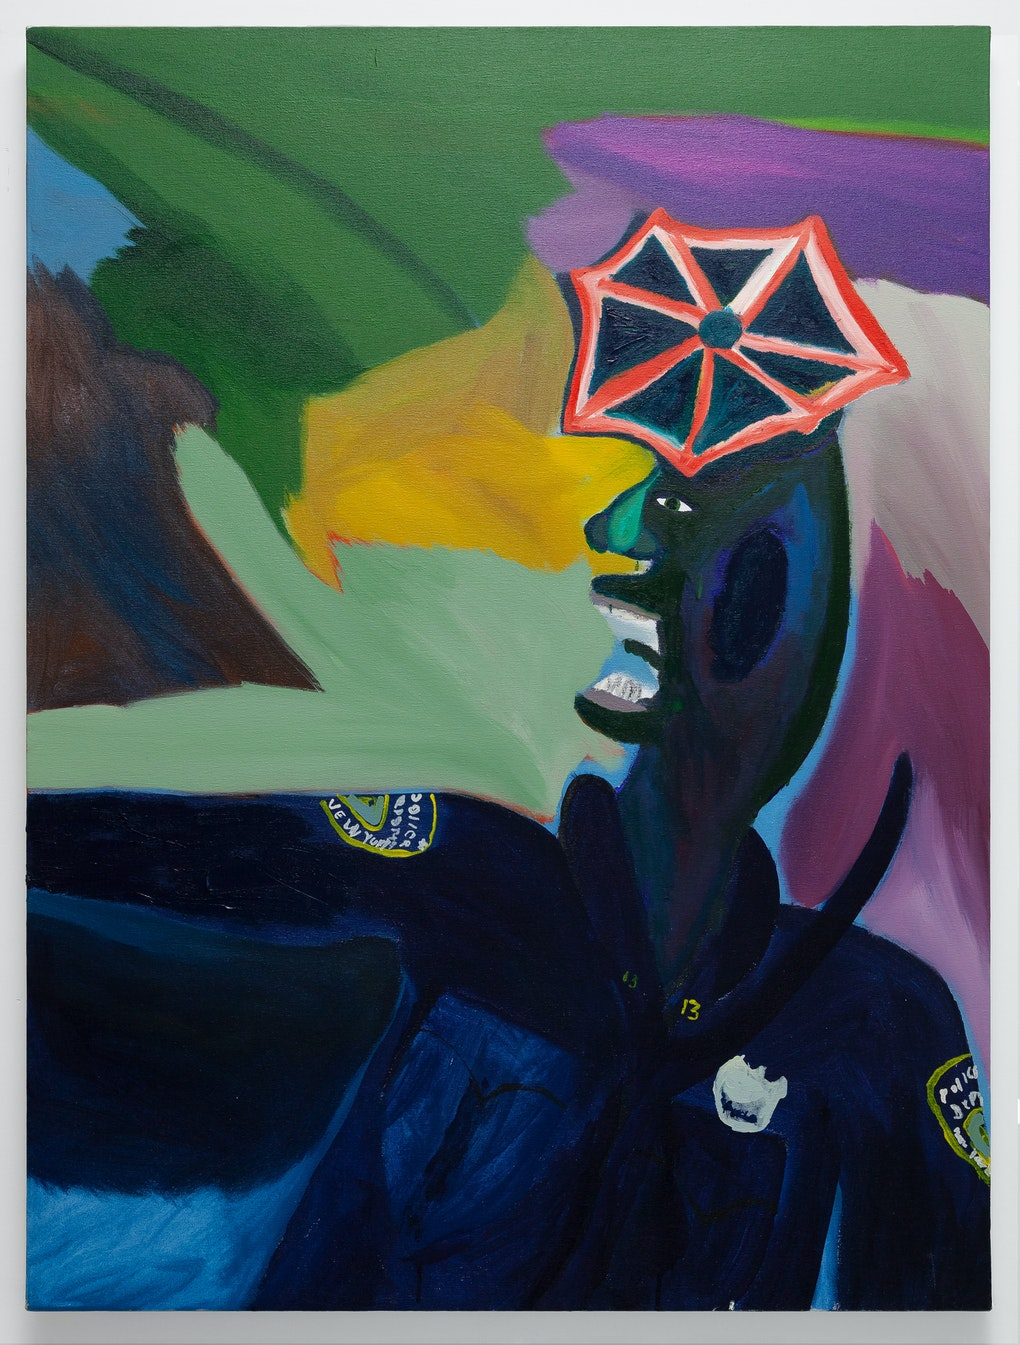 130c624939cf9 Marcus Jahmal, Black and blue, 2018. Oil and acrylic on canvas, 40 x 30  inches. Courtesy the artist. Photo: Zach Krall.